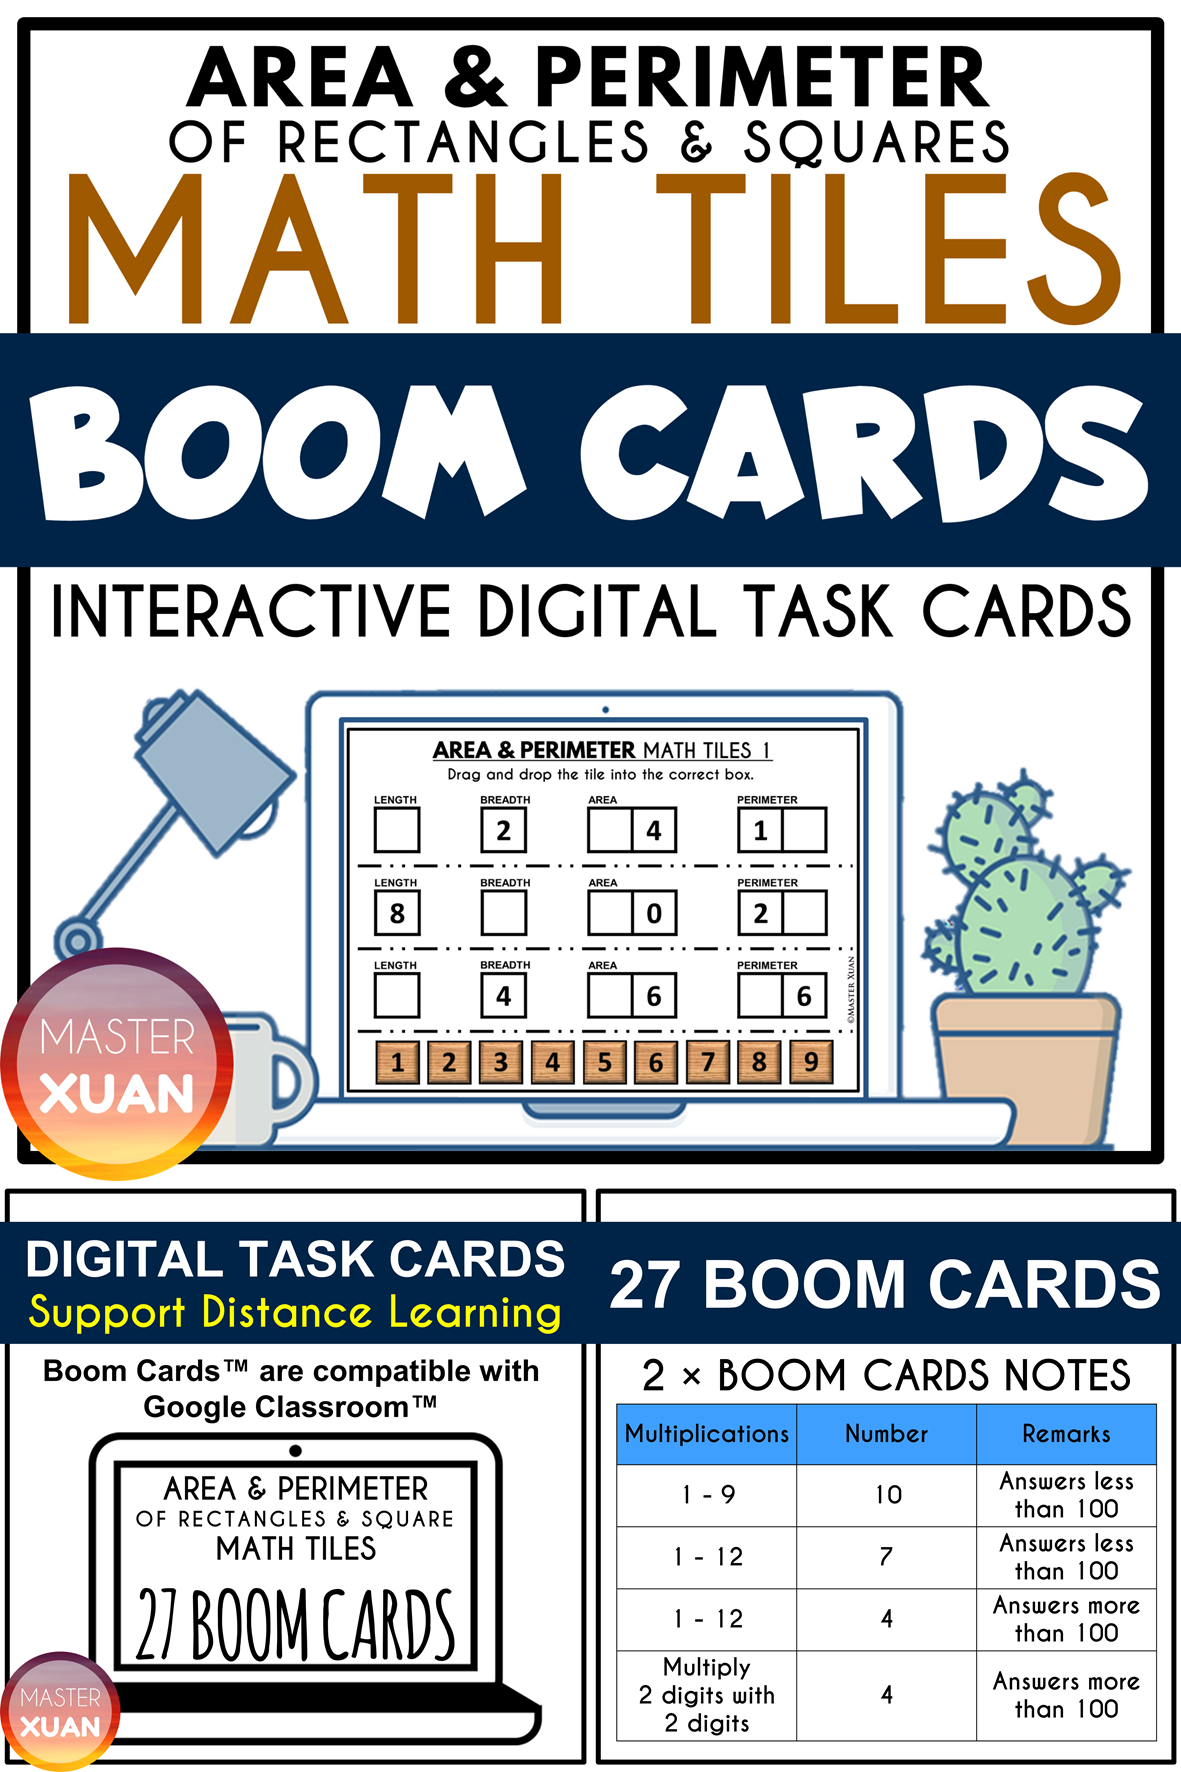 Pin On The Paperless Digital Classroom